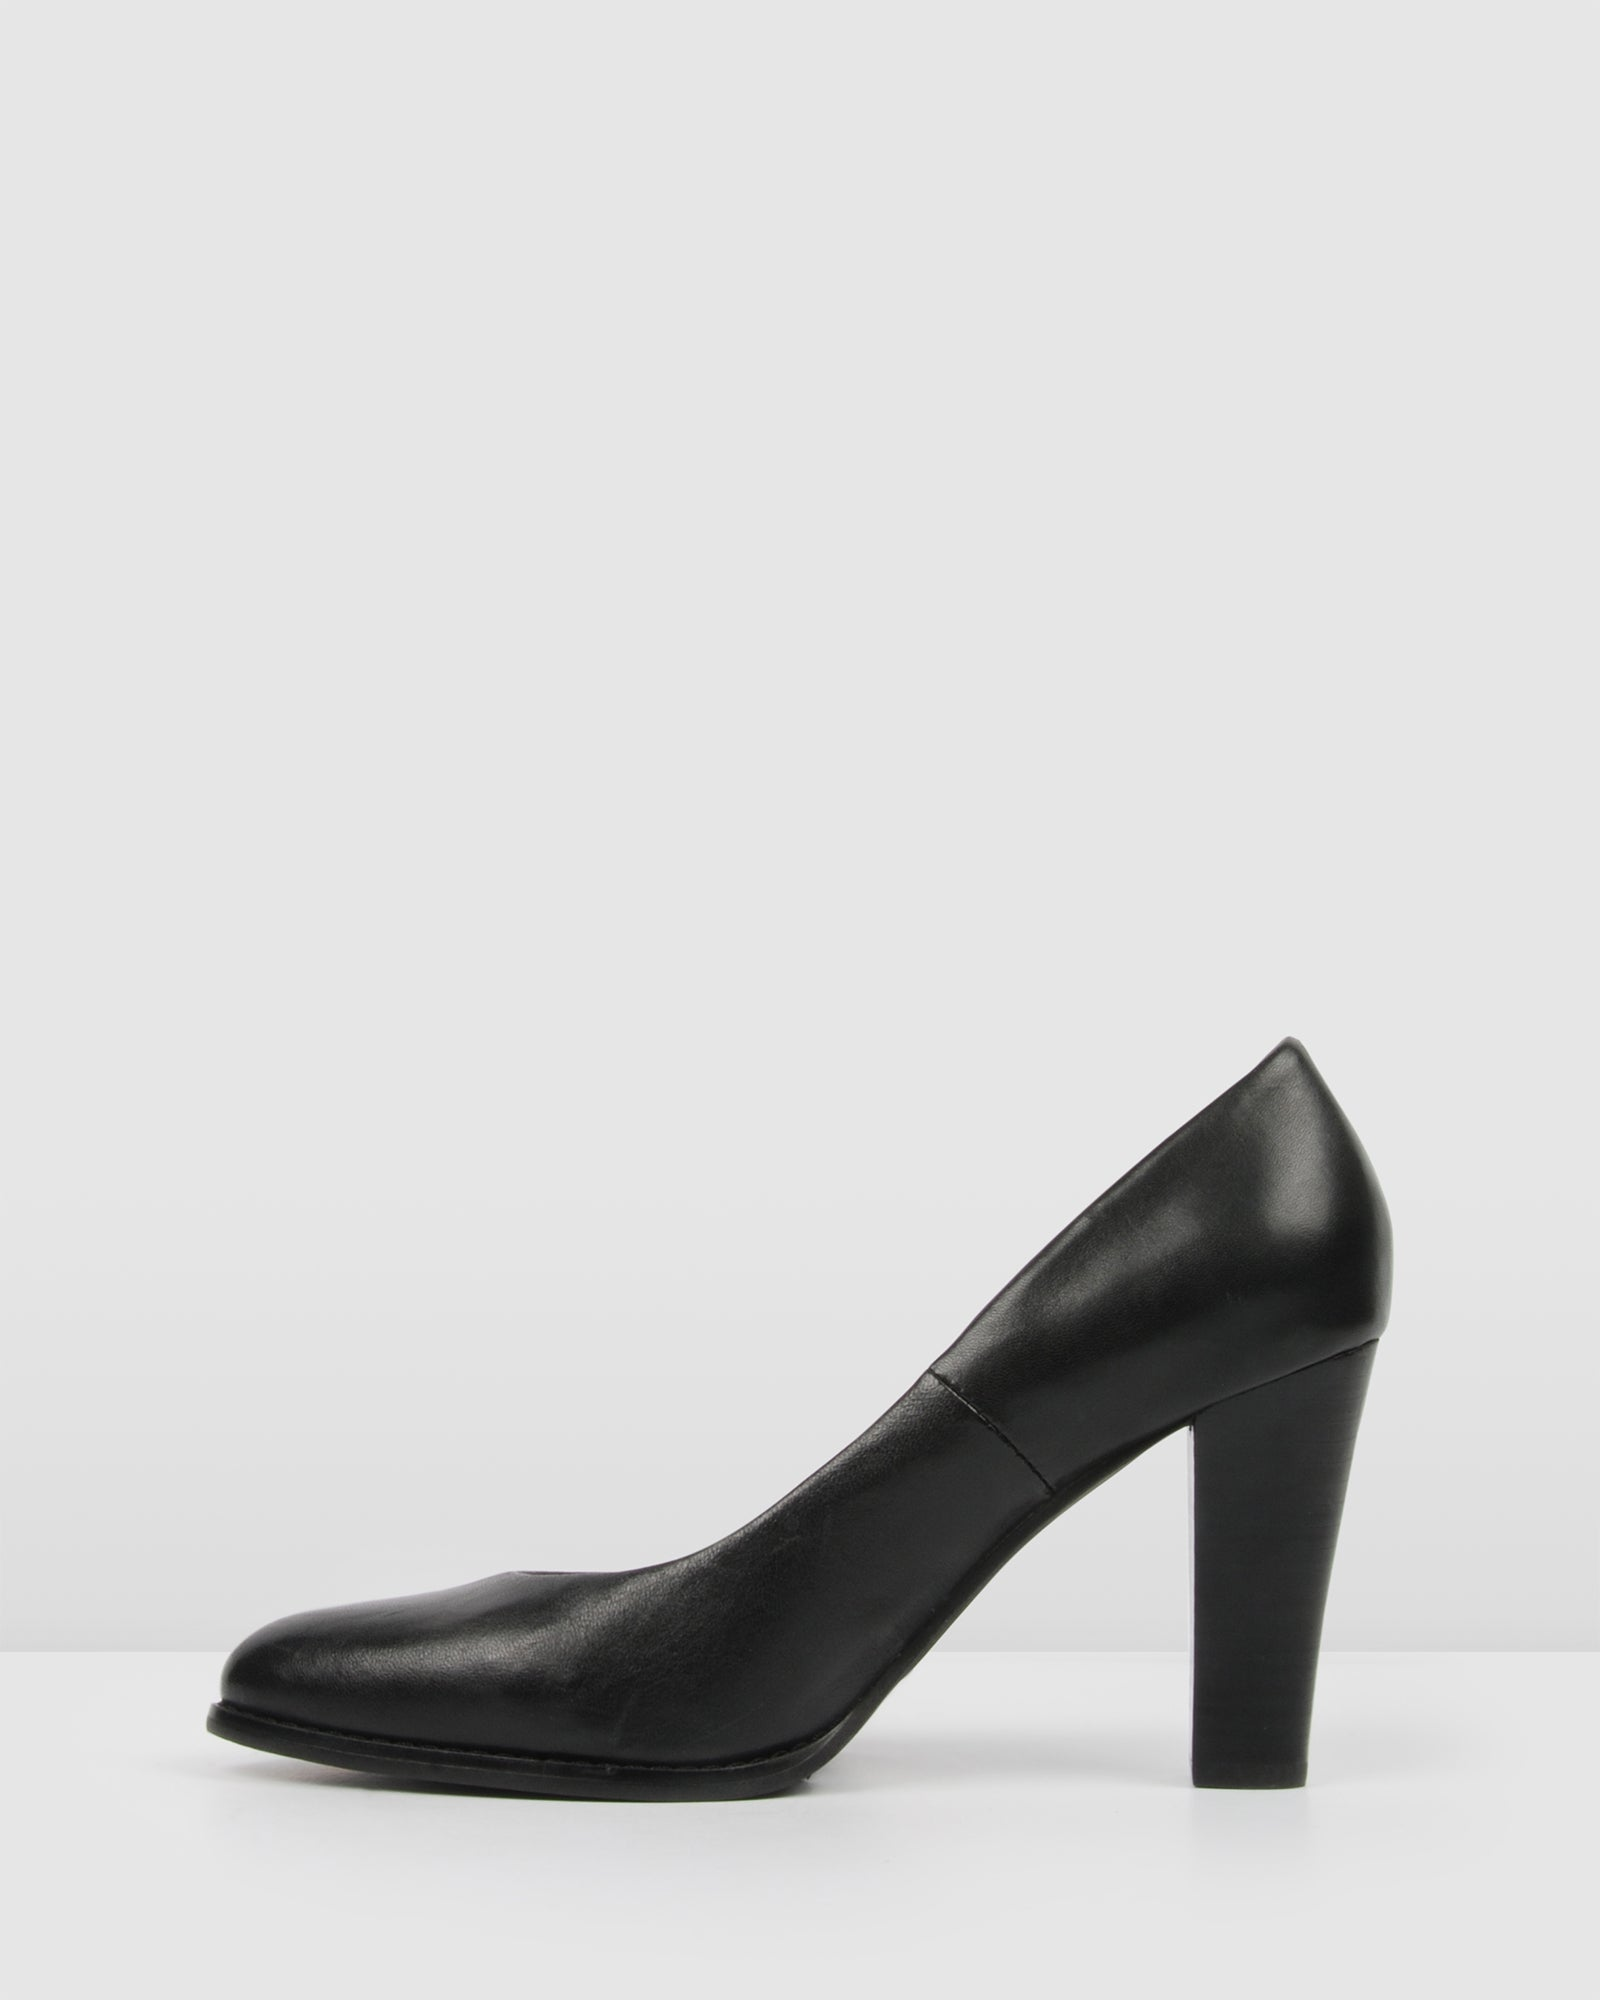 UPTOWN HIGH HEELS BLACK LEATHER